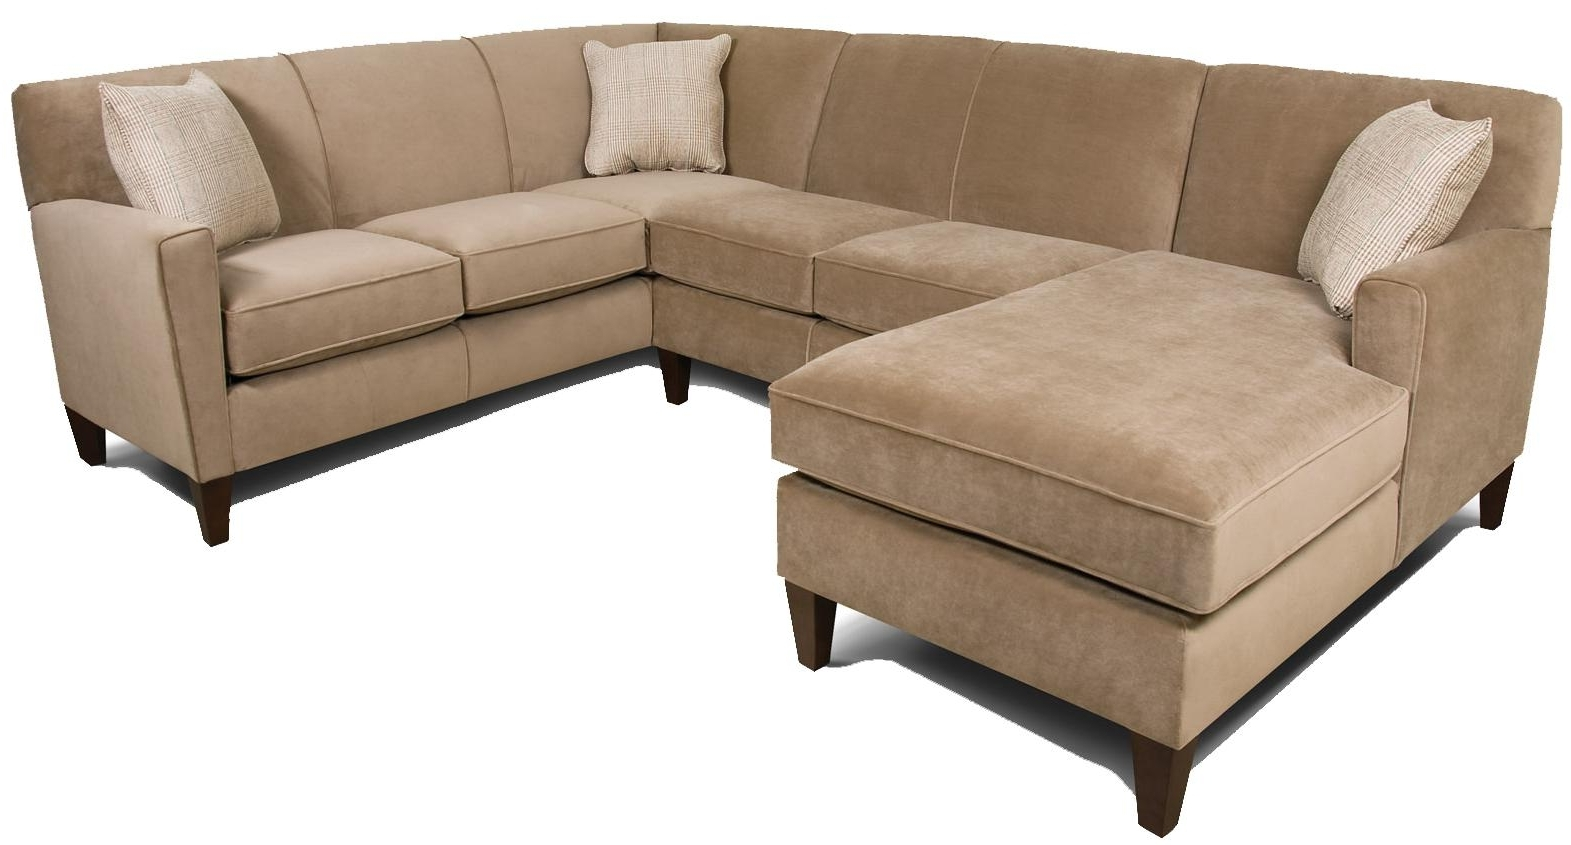 Sectional Sofas For Campers With Well Liked 3 Piece Sectional Sofa England Collegedale Contemporary With Laf (View 15 of 20)